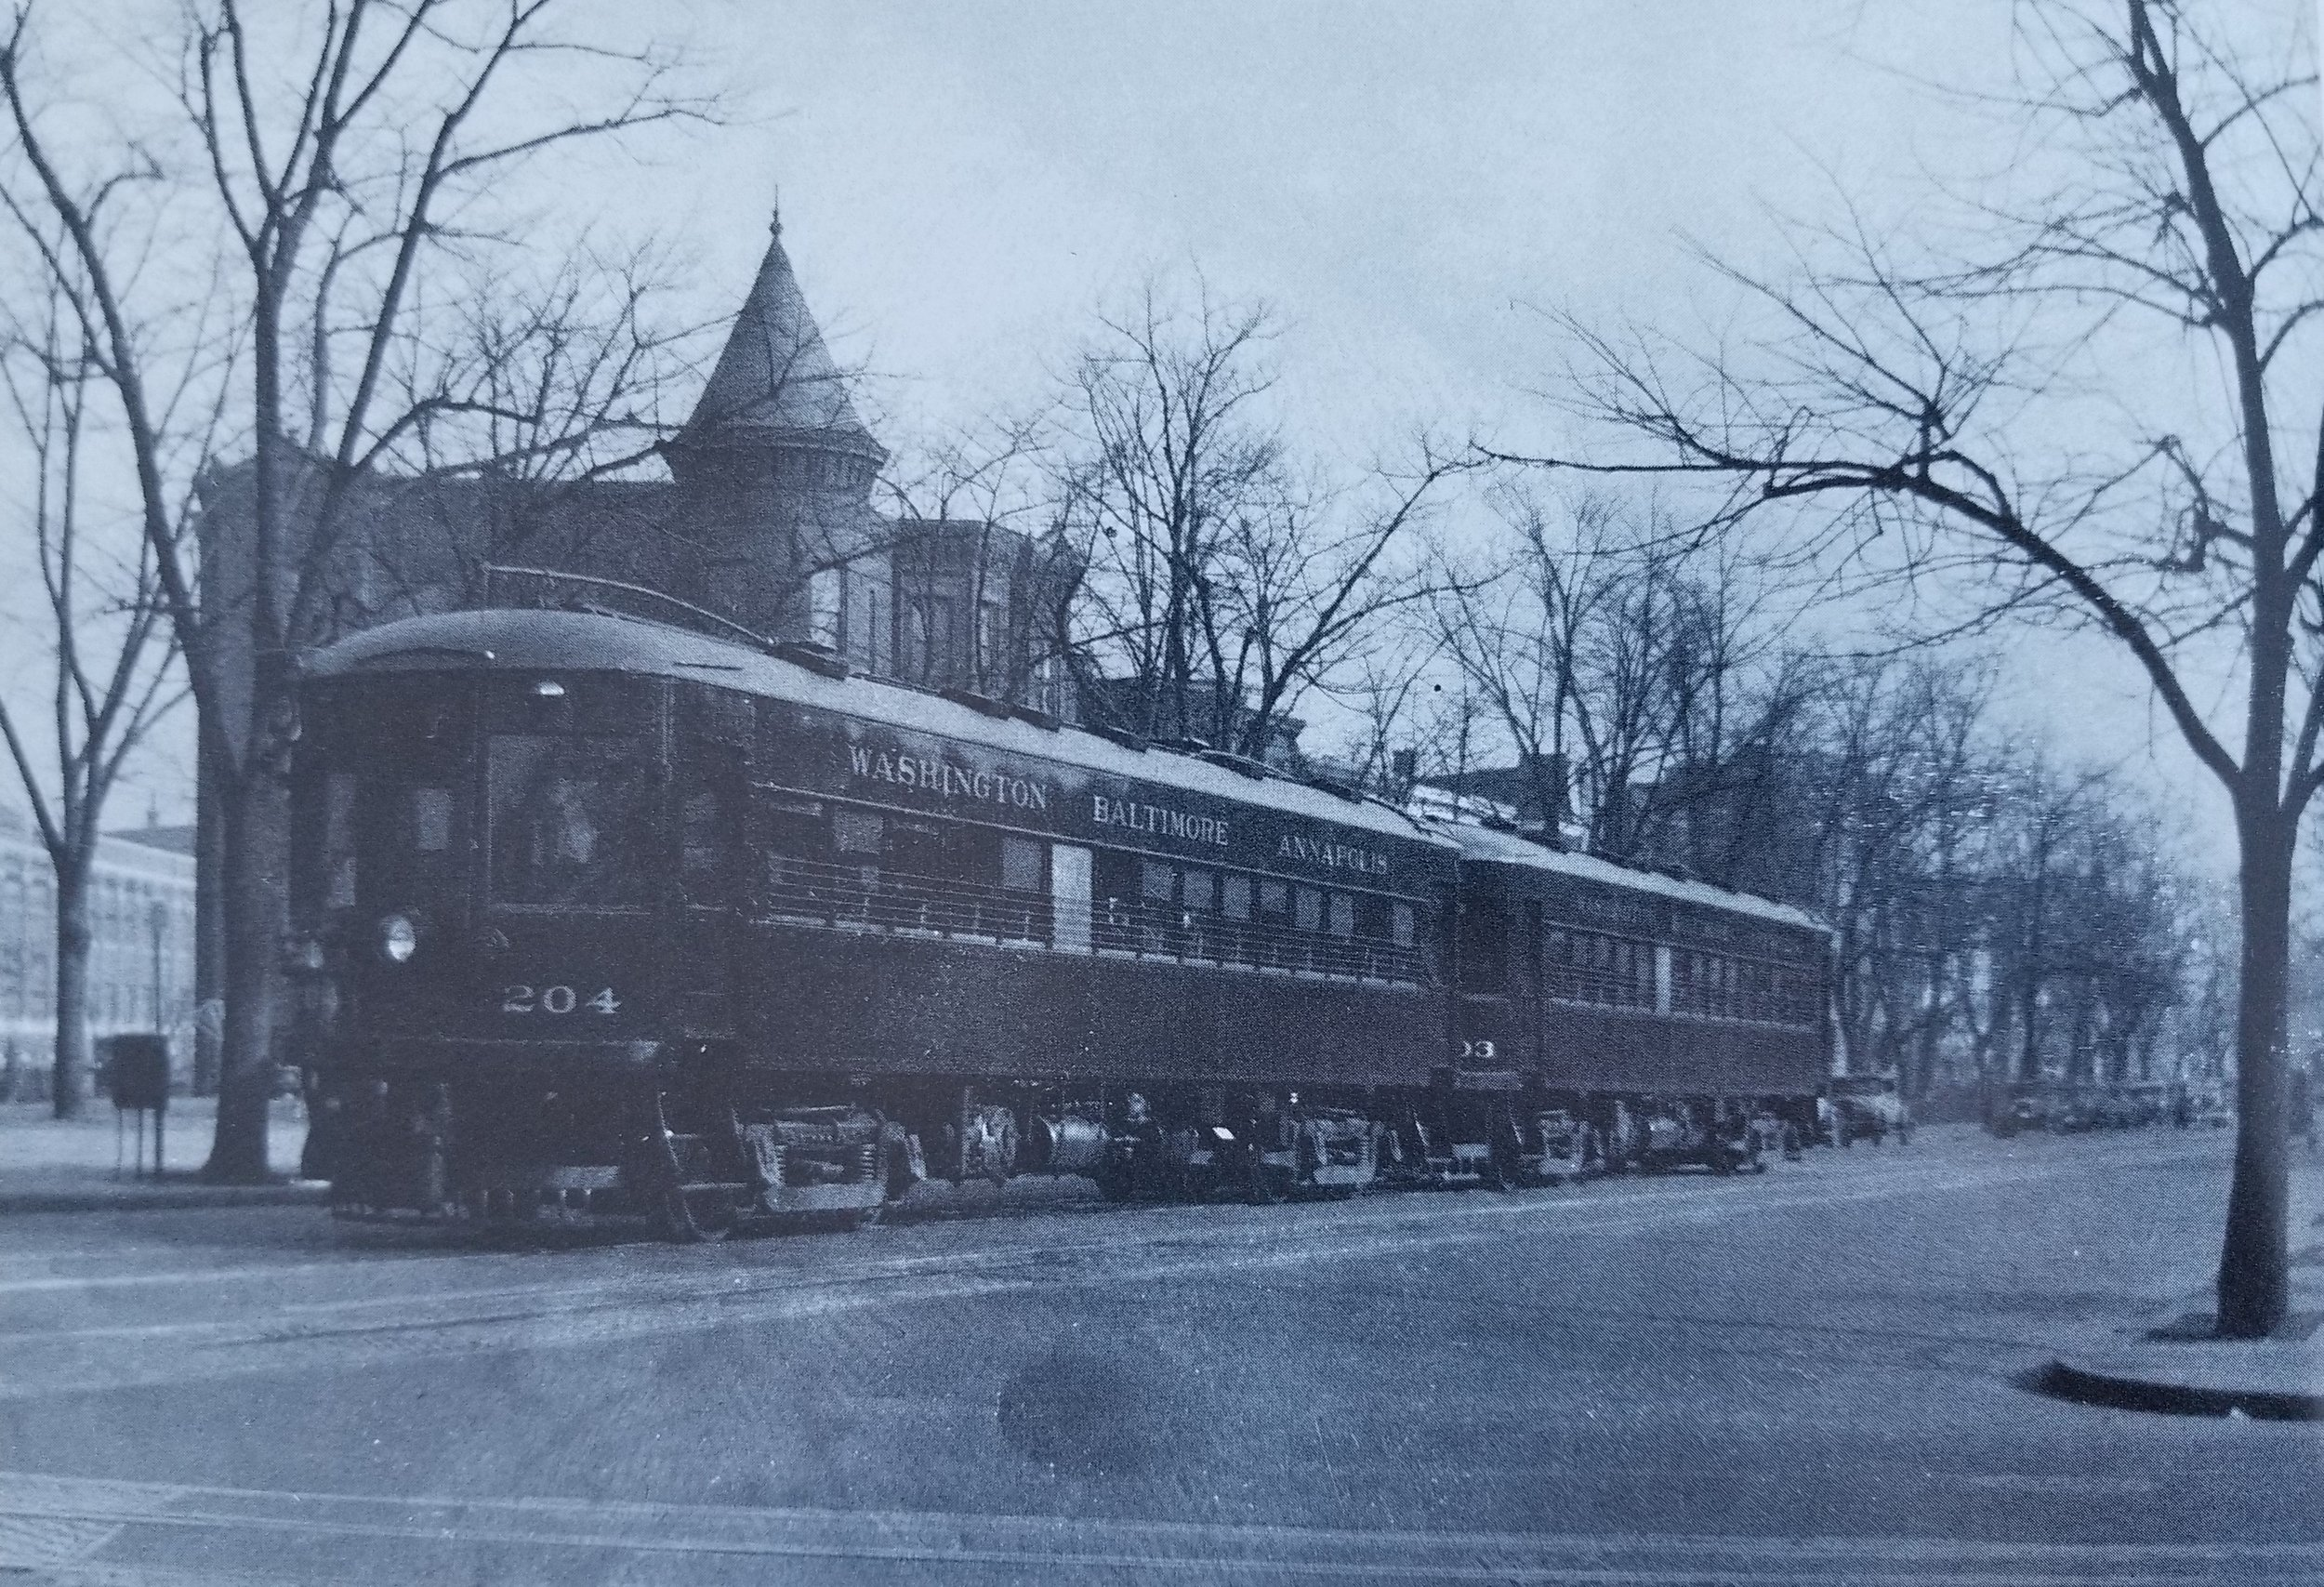 Washington, Baltimore & Annapolis Railroad Cars #204 & #203 inbound to Washington Station on 5th and Massachusetts Avenue N.W. Date: Unknown. Source: John B. Yeabower.